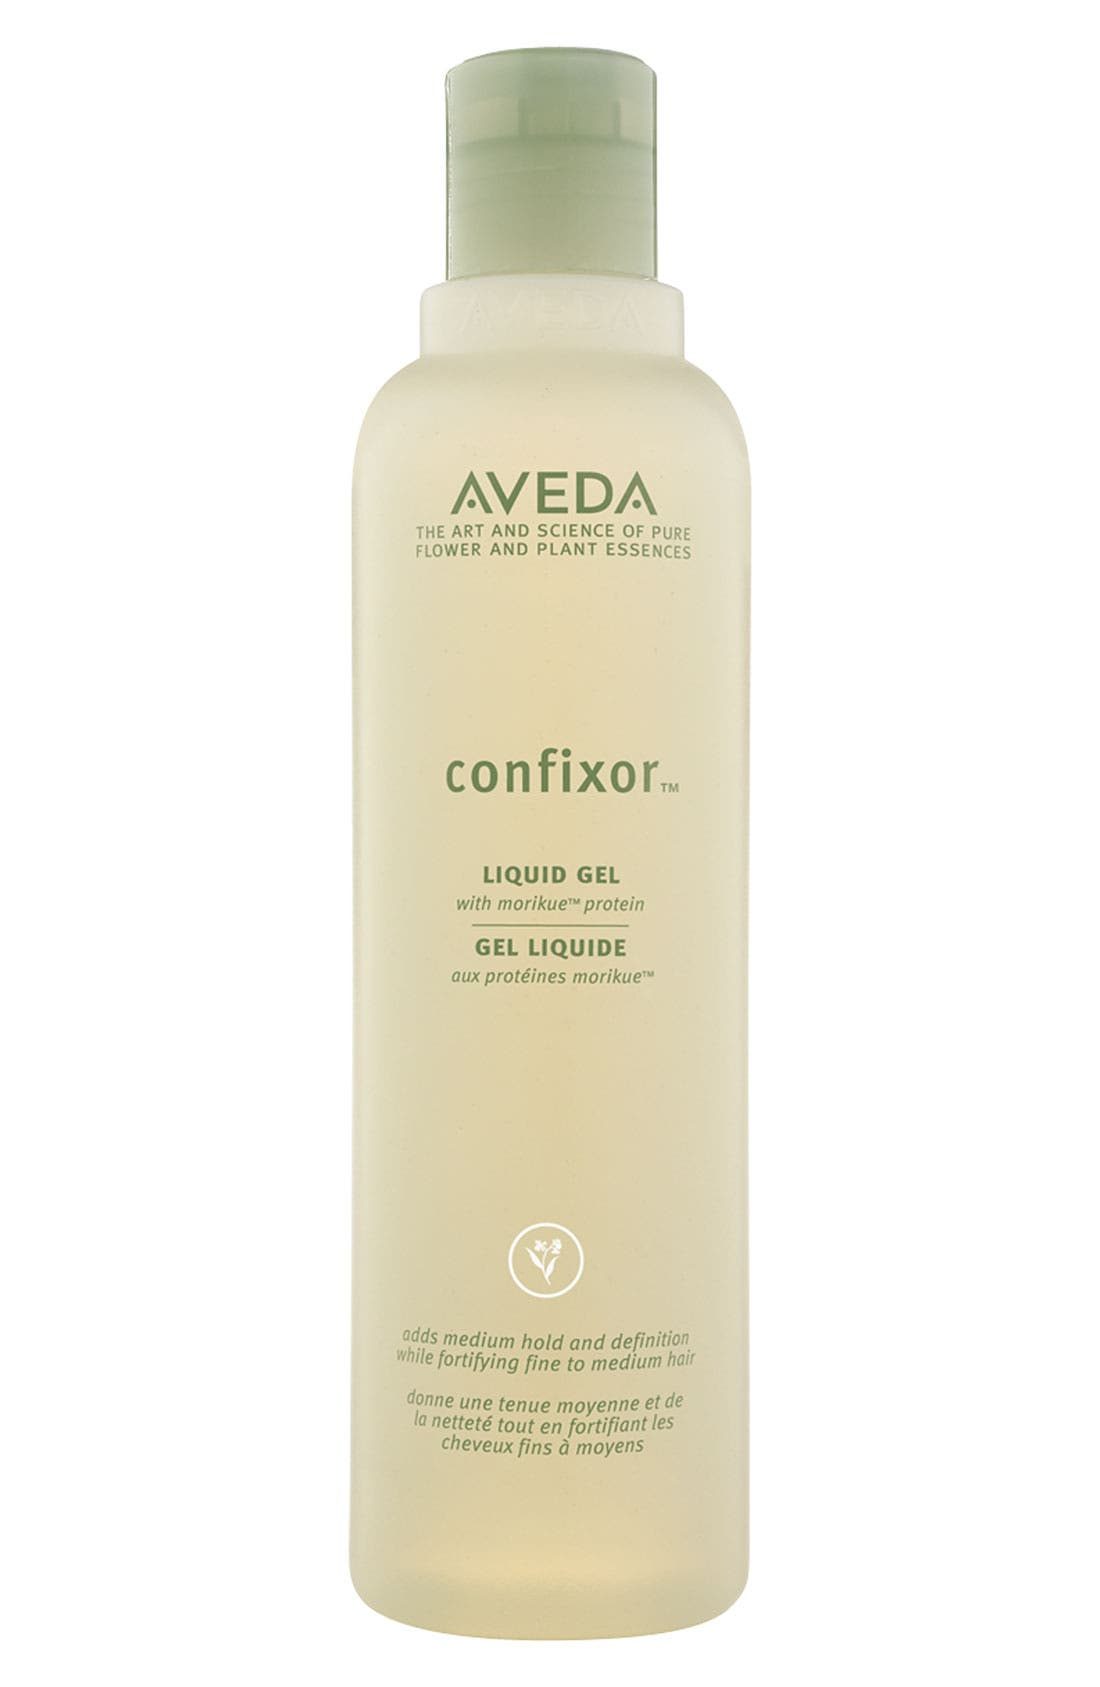 Aveda confixor™ Liquid Gel